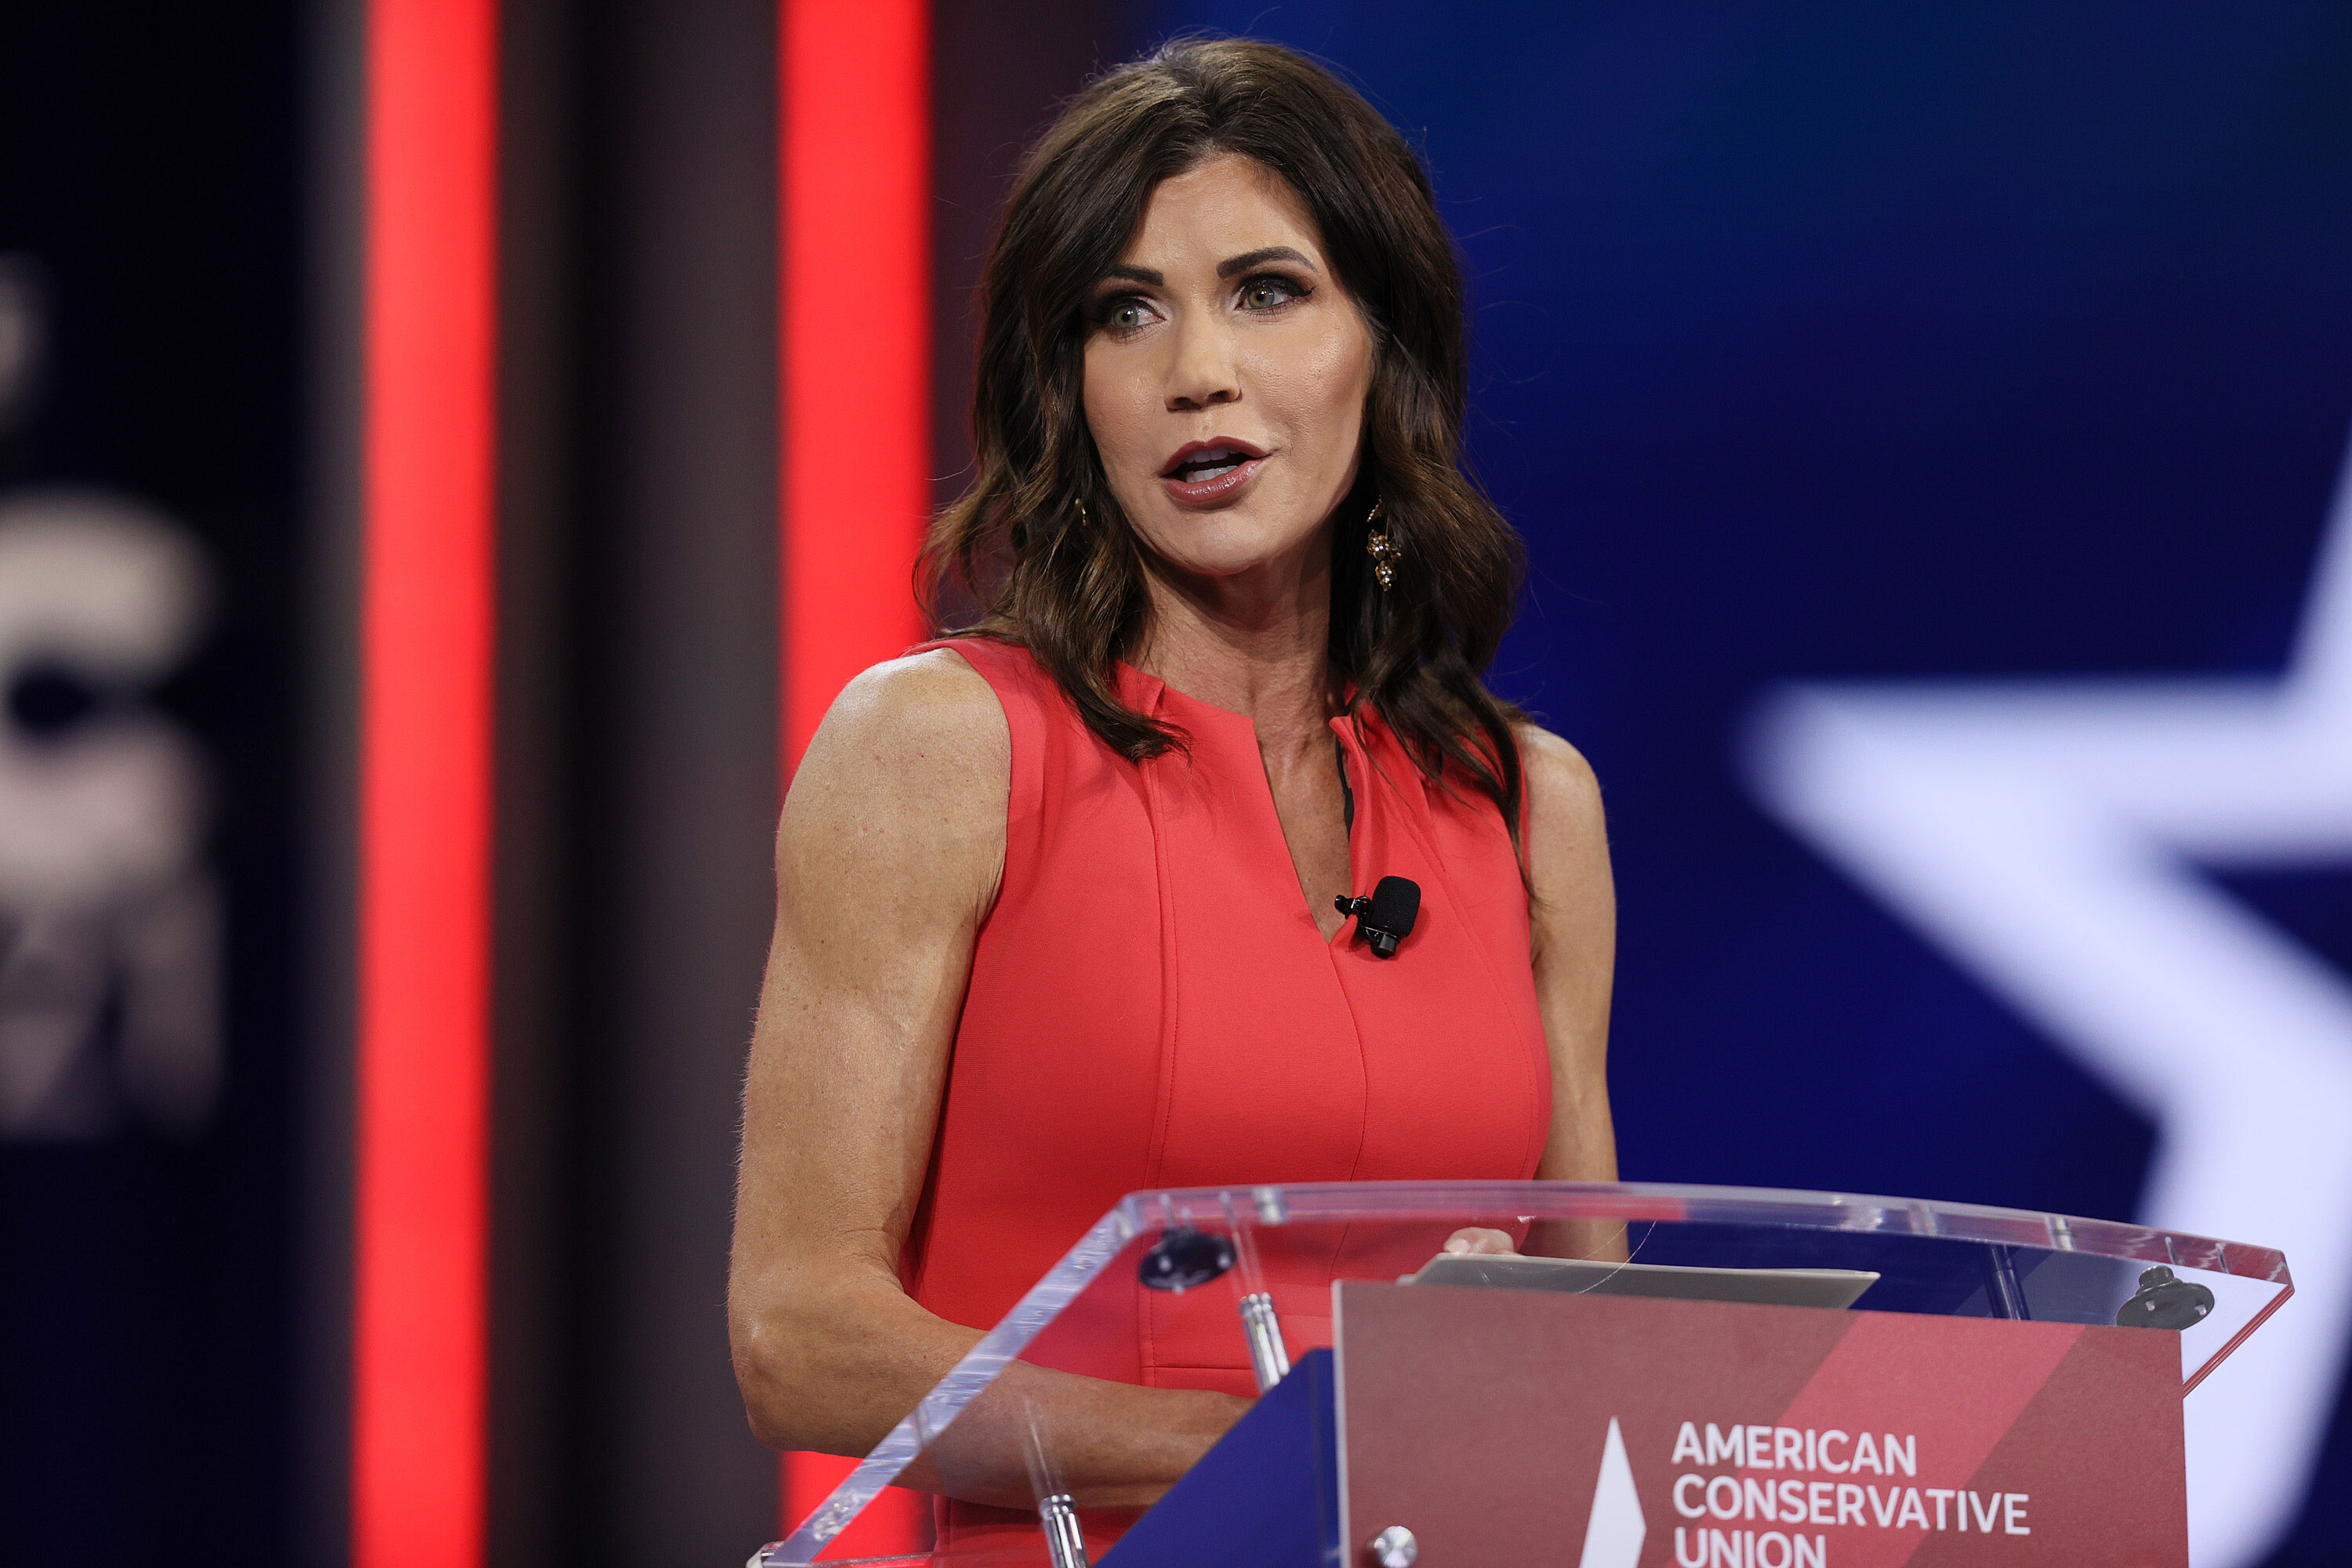 Controversy follows Noem in South Dakota as she eyes national stage